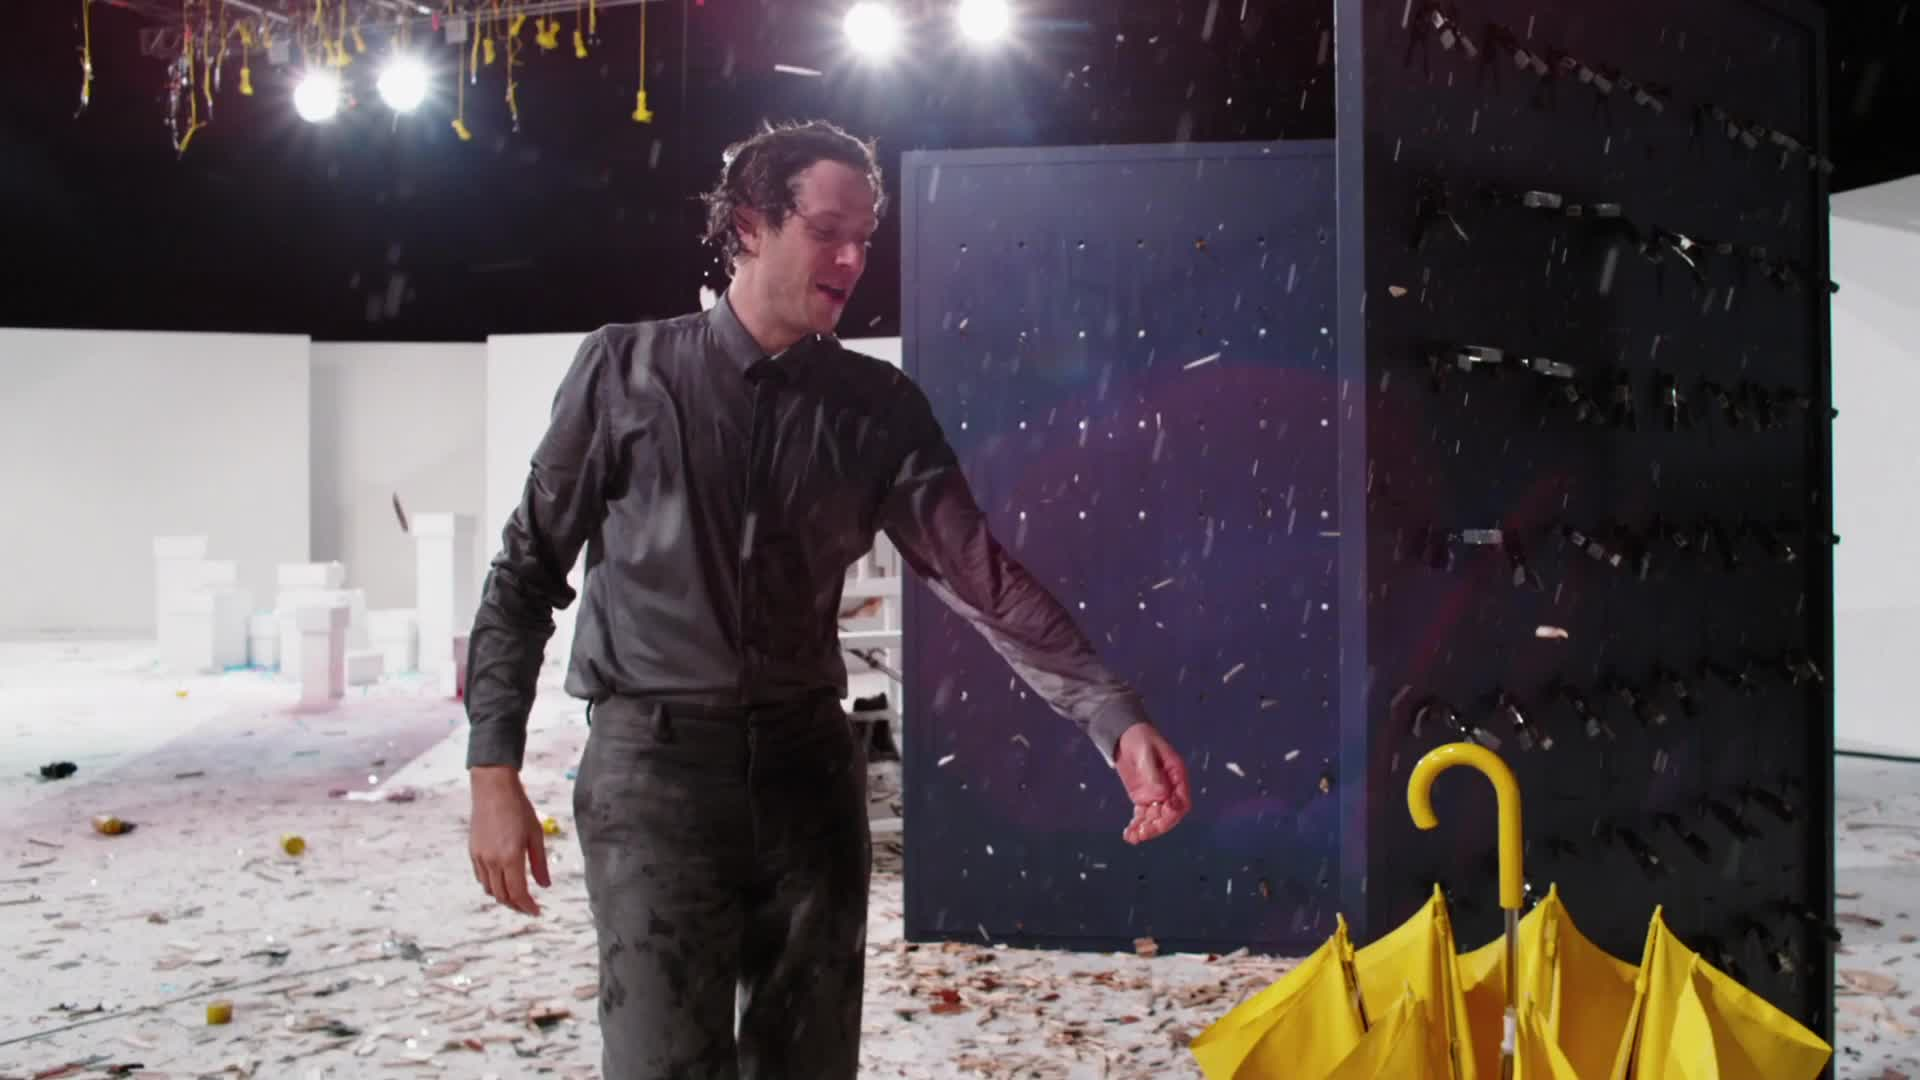 OK Go, The One Moment, moment, morton, music, okgo, one, theonemoment, Singing in the rain with Damian - OK Go GIFs